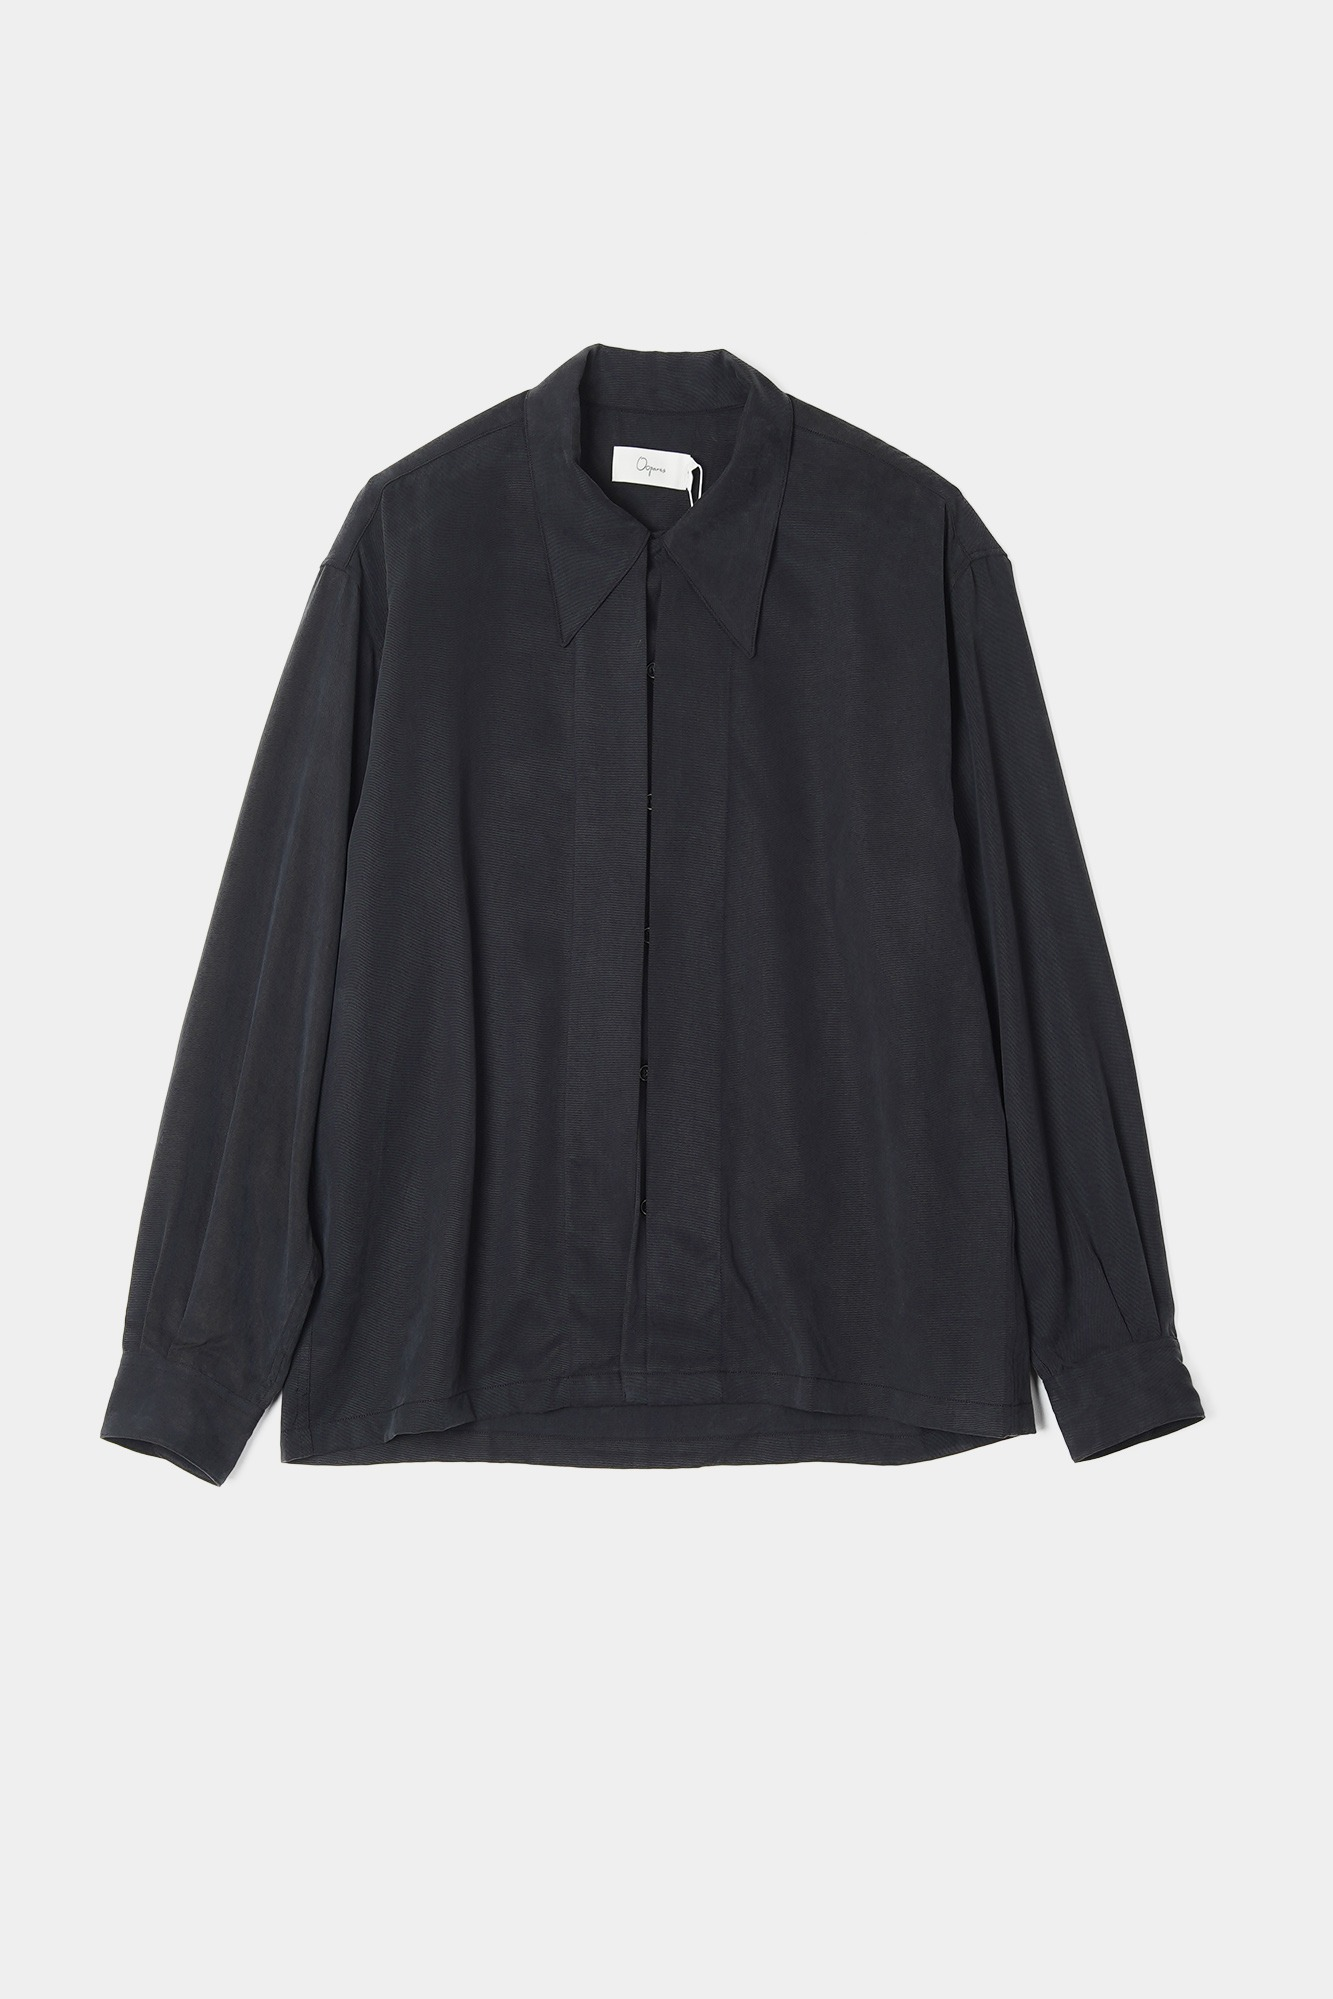 "OOPARTS Open collar tencel shirts ""Cola"""